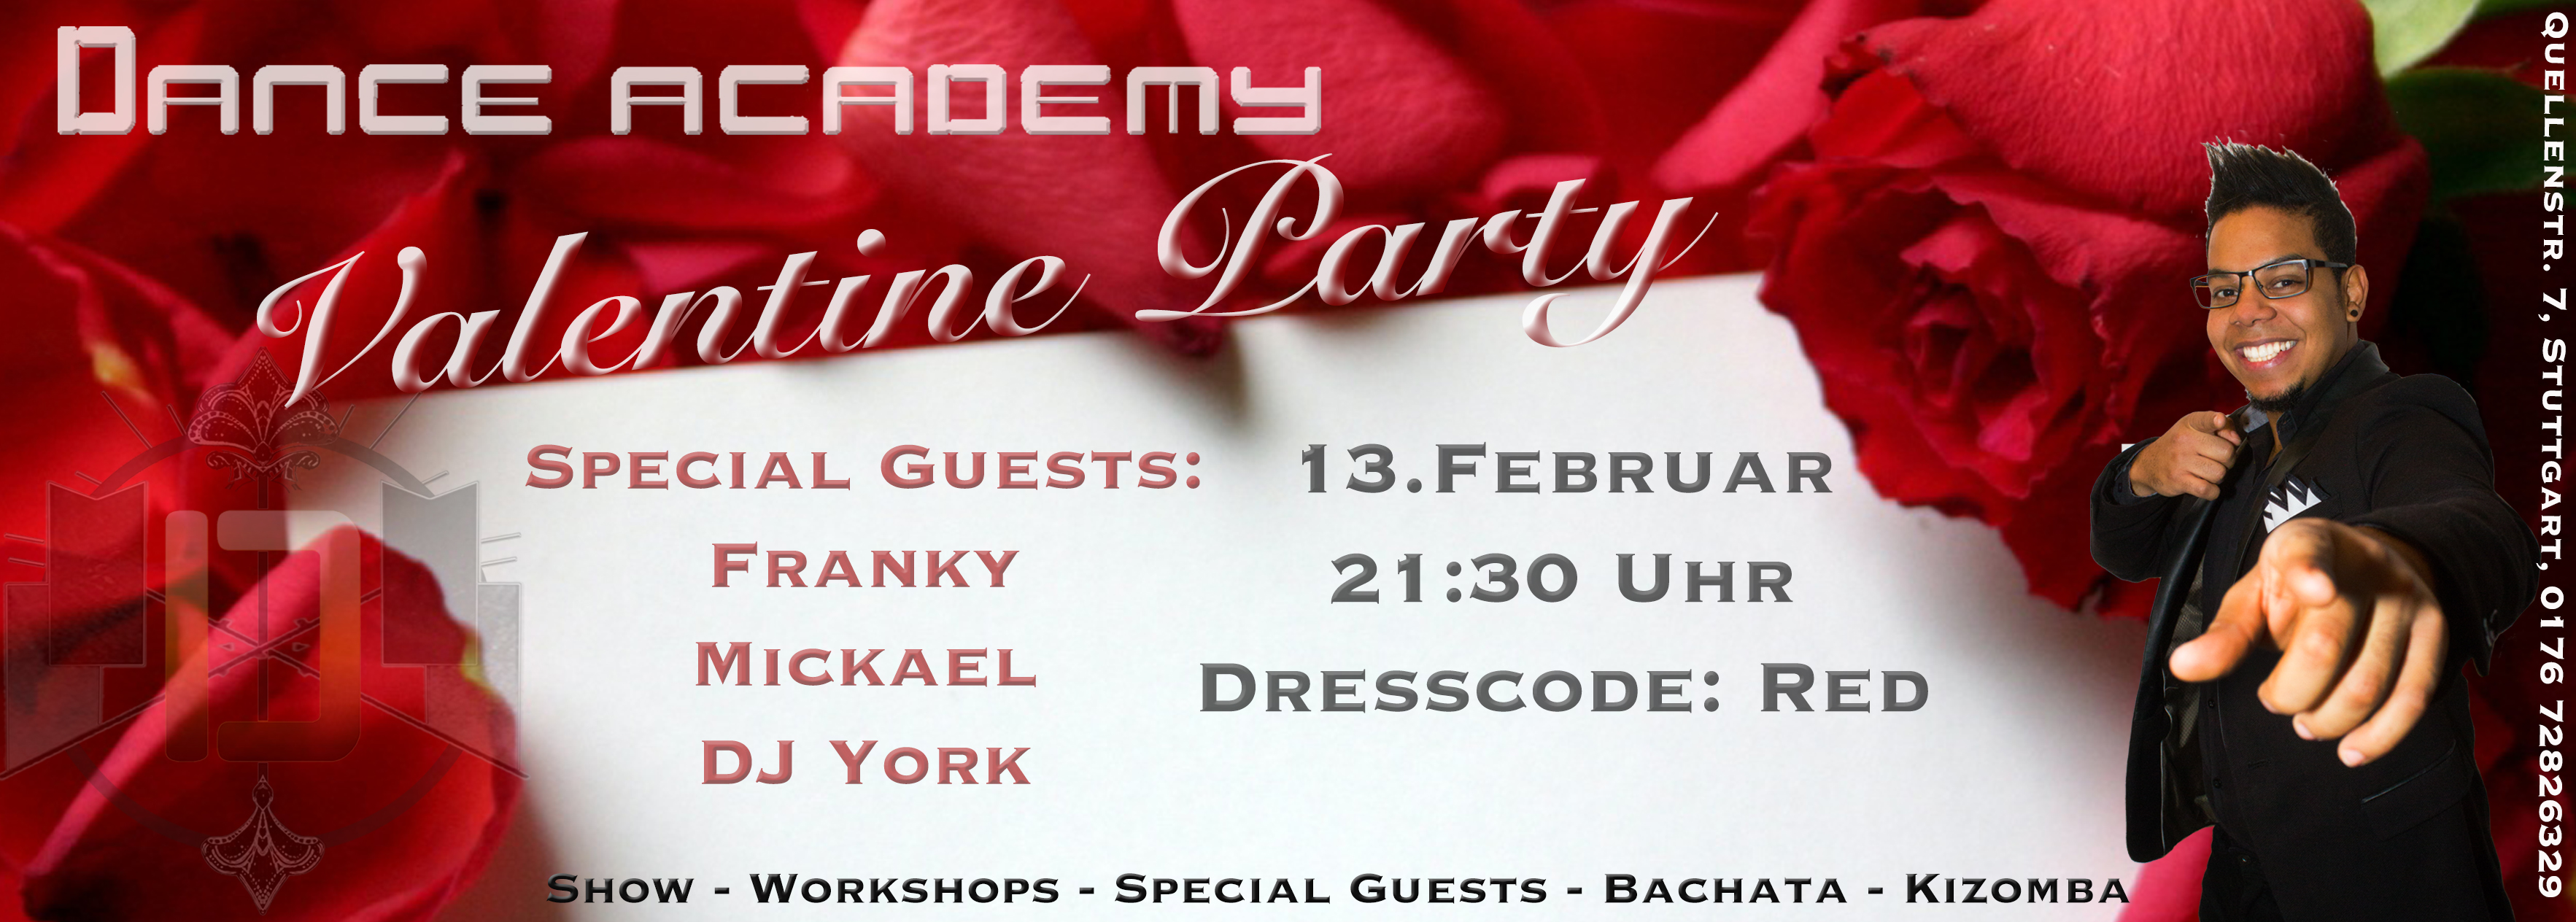 Bachata/Kizomba Party mit Special Guests in Stuttgart